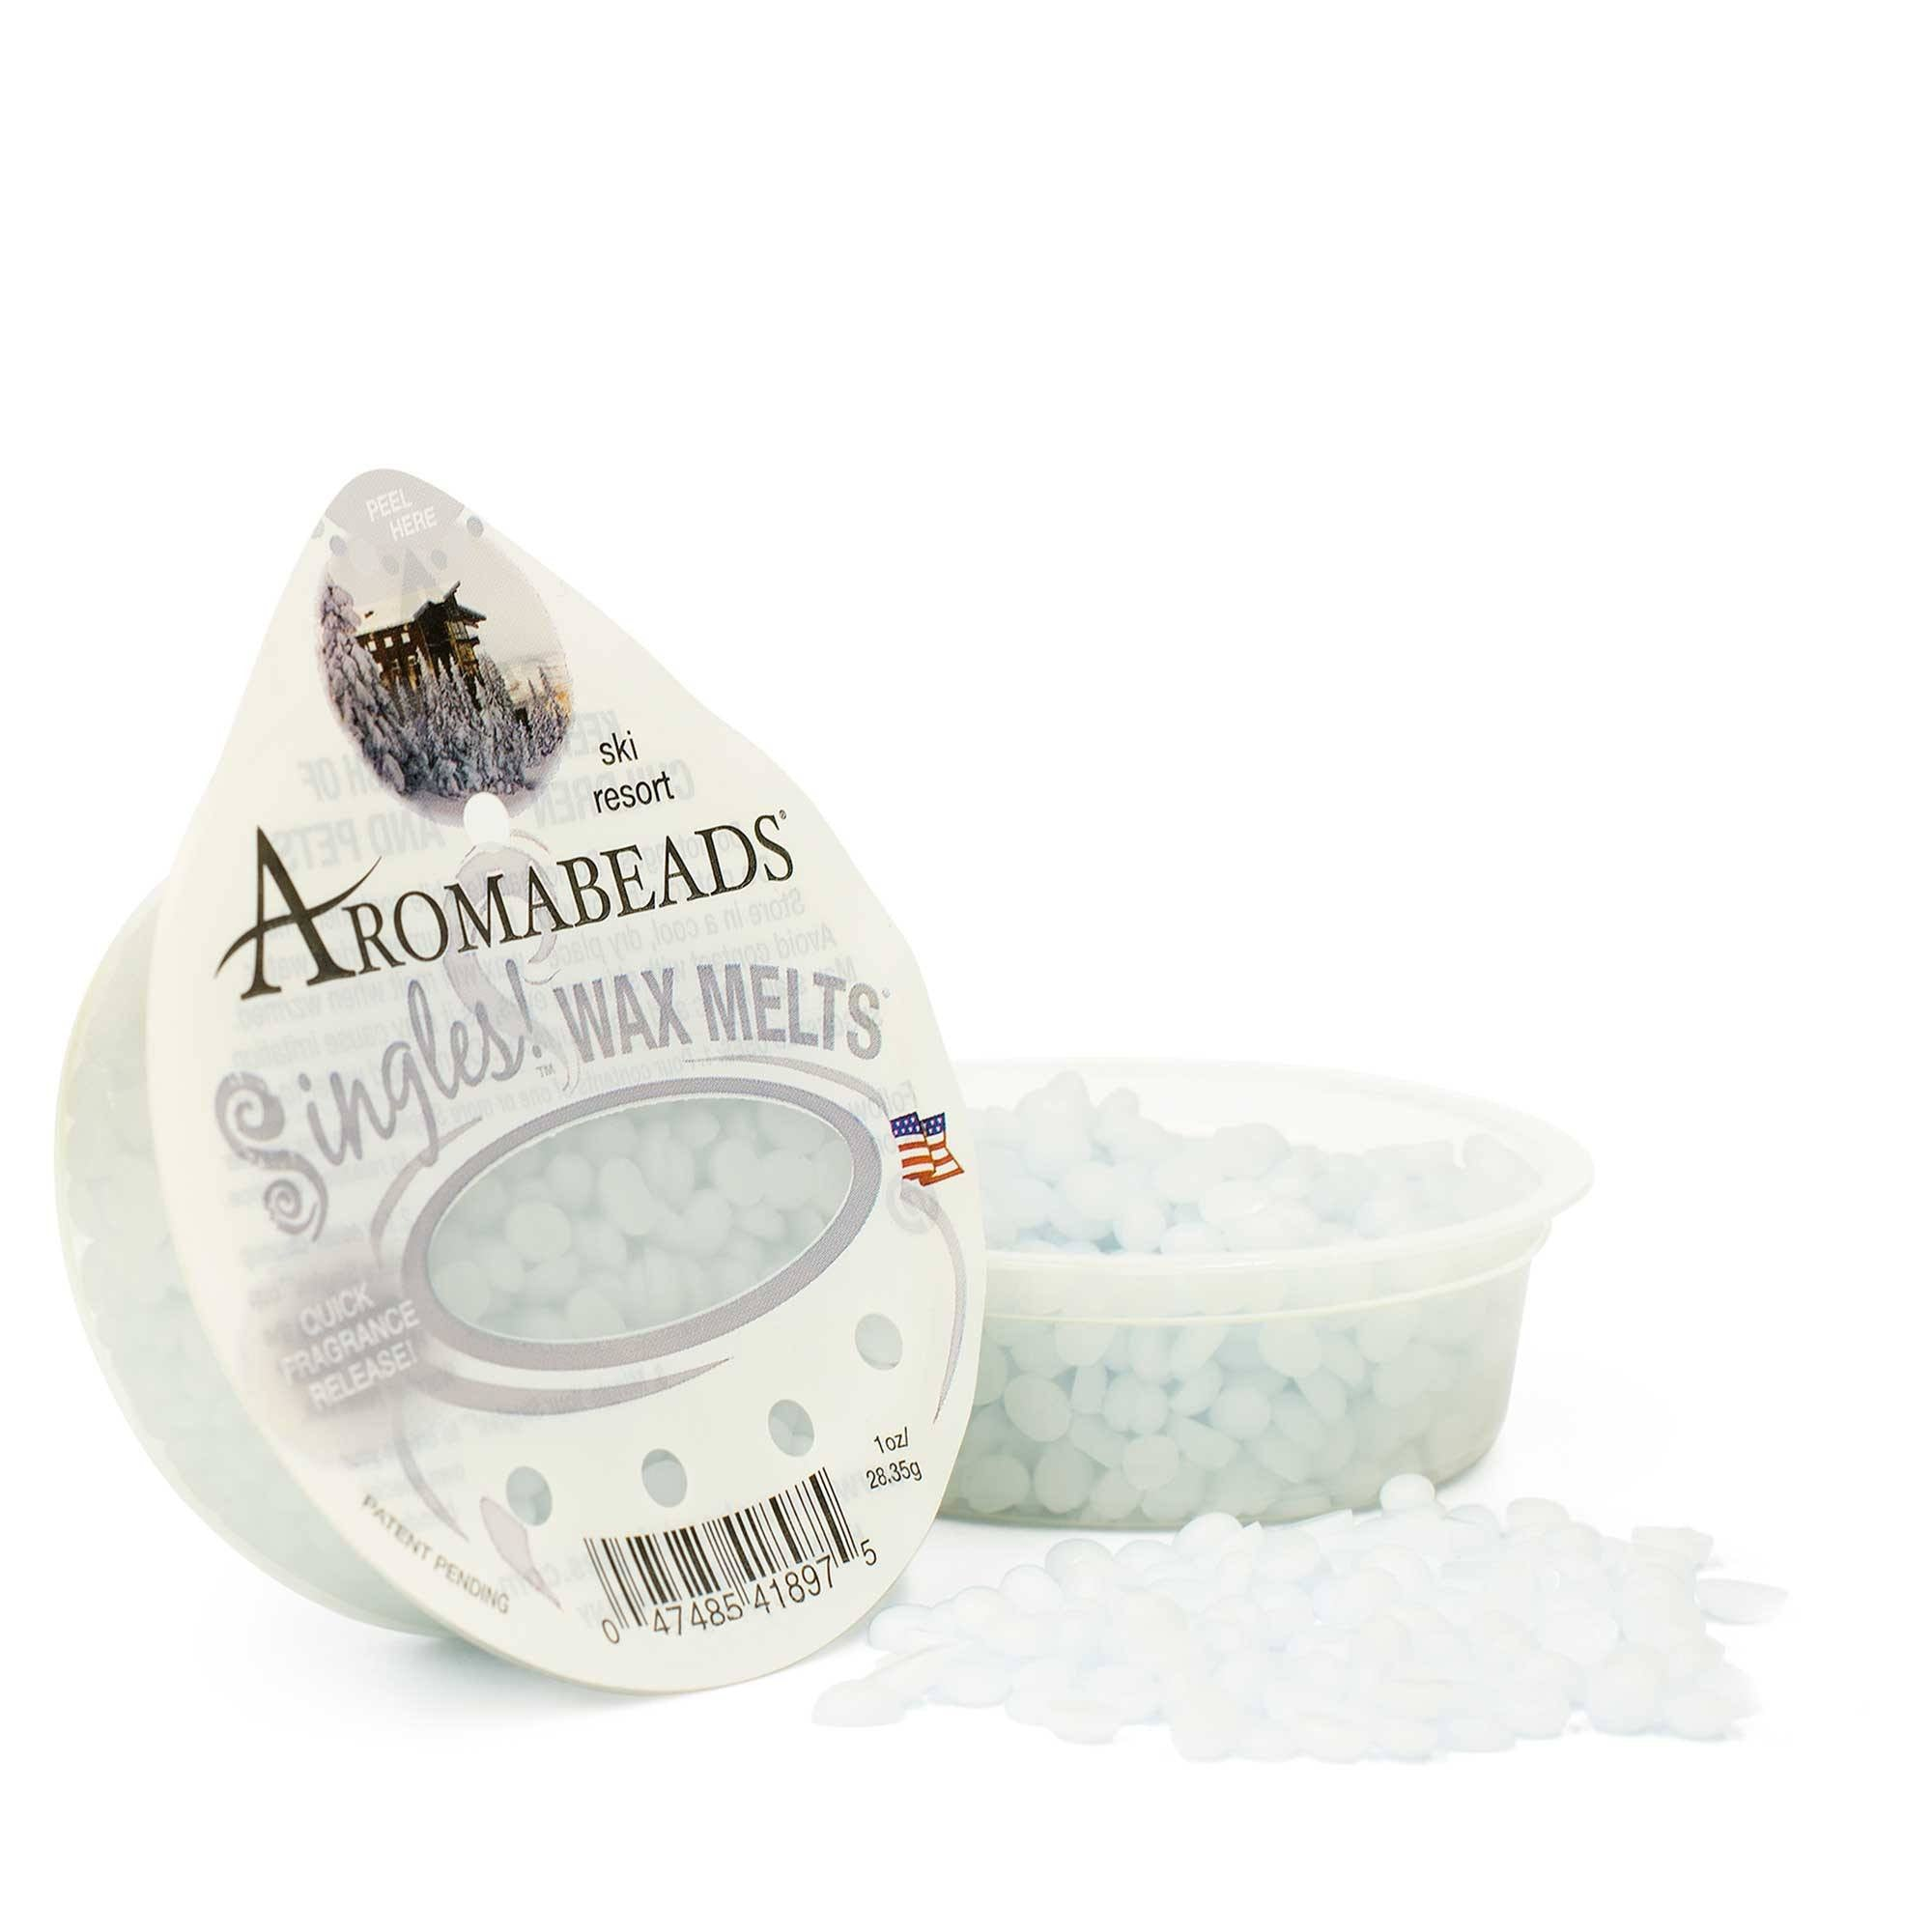 Aromabeads Singles Ski Resort Scented Wax Melts Melts Candlemart.com $ 1.49